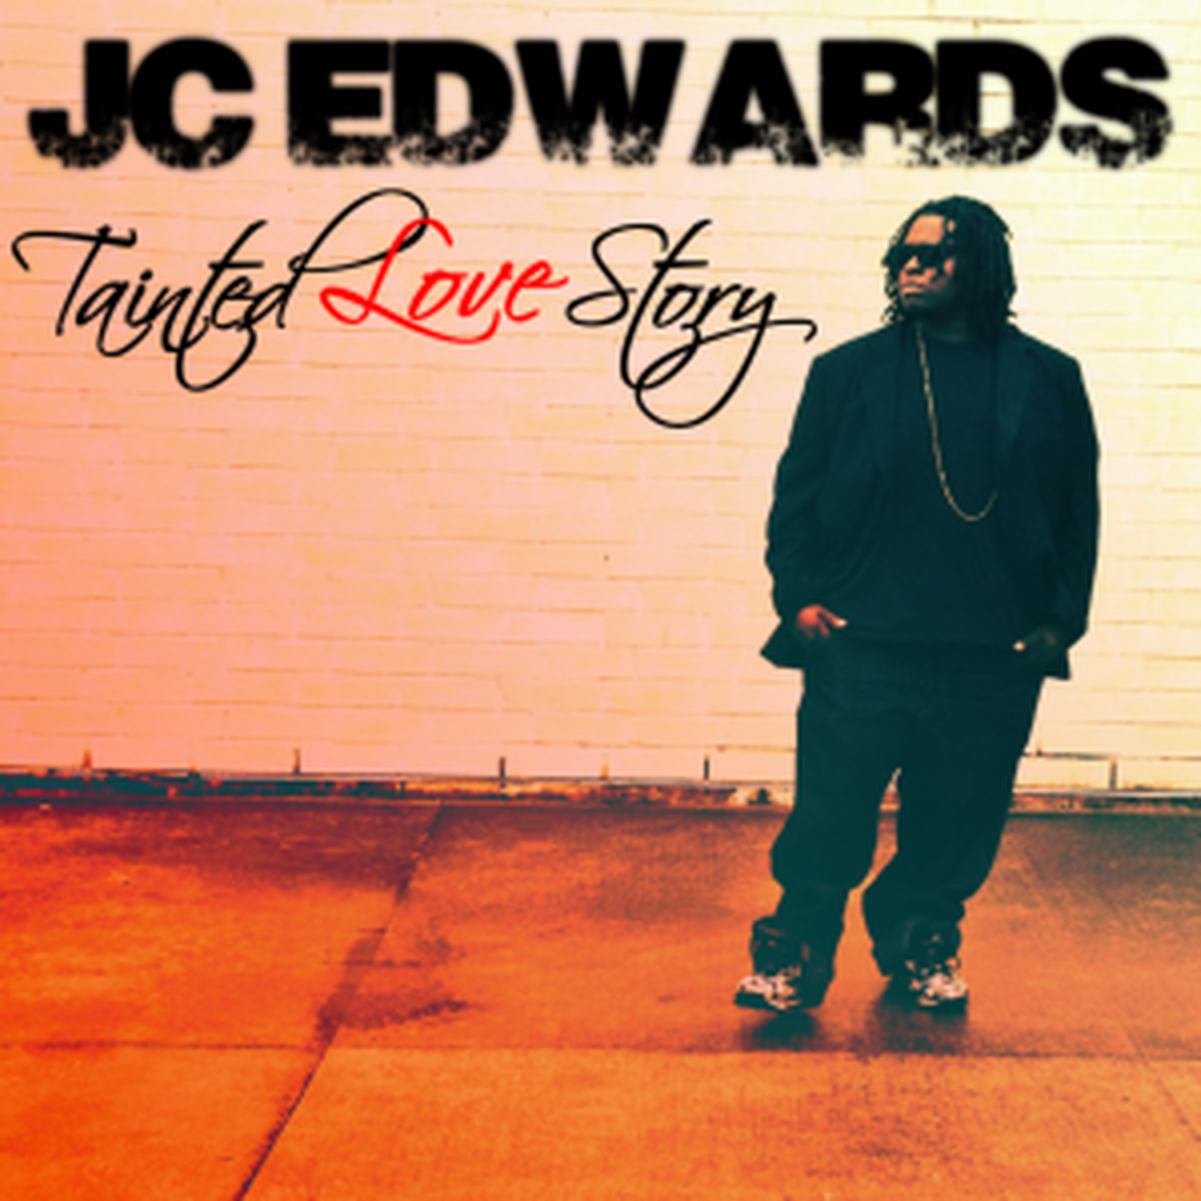 JC Edwards